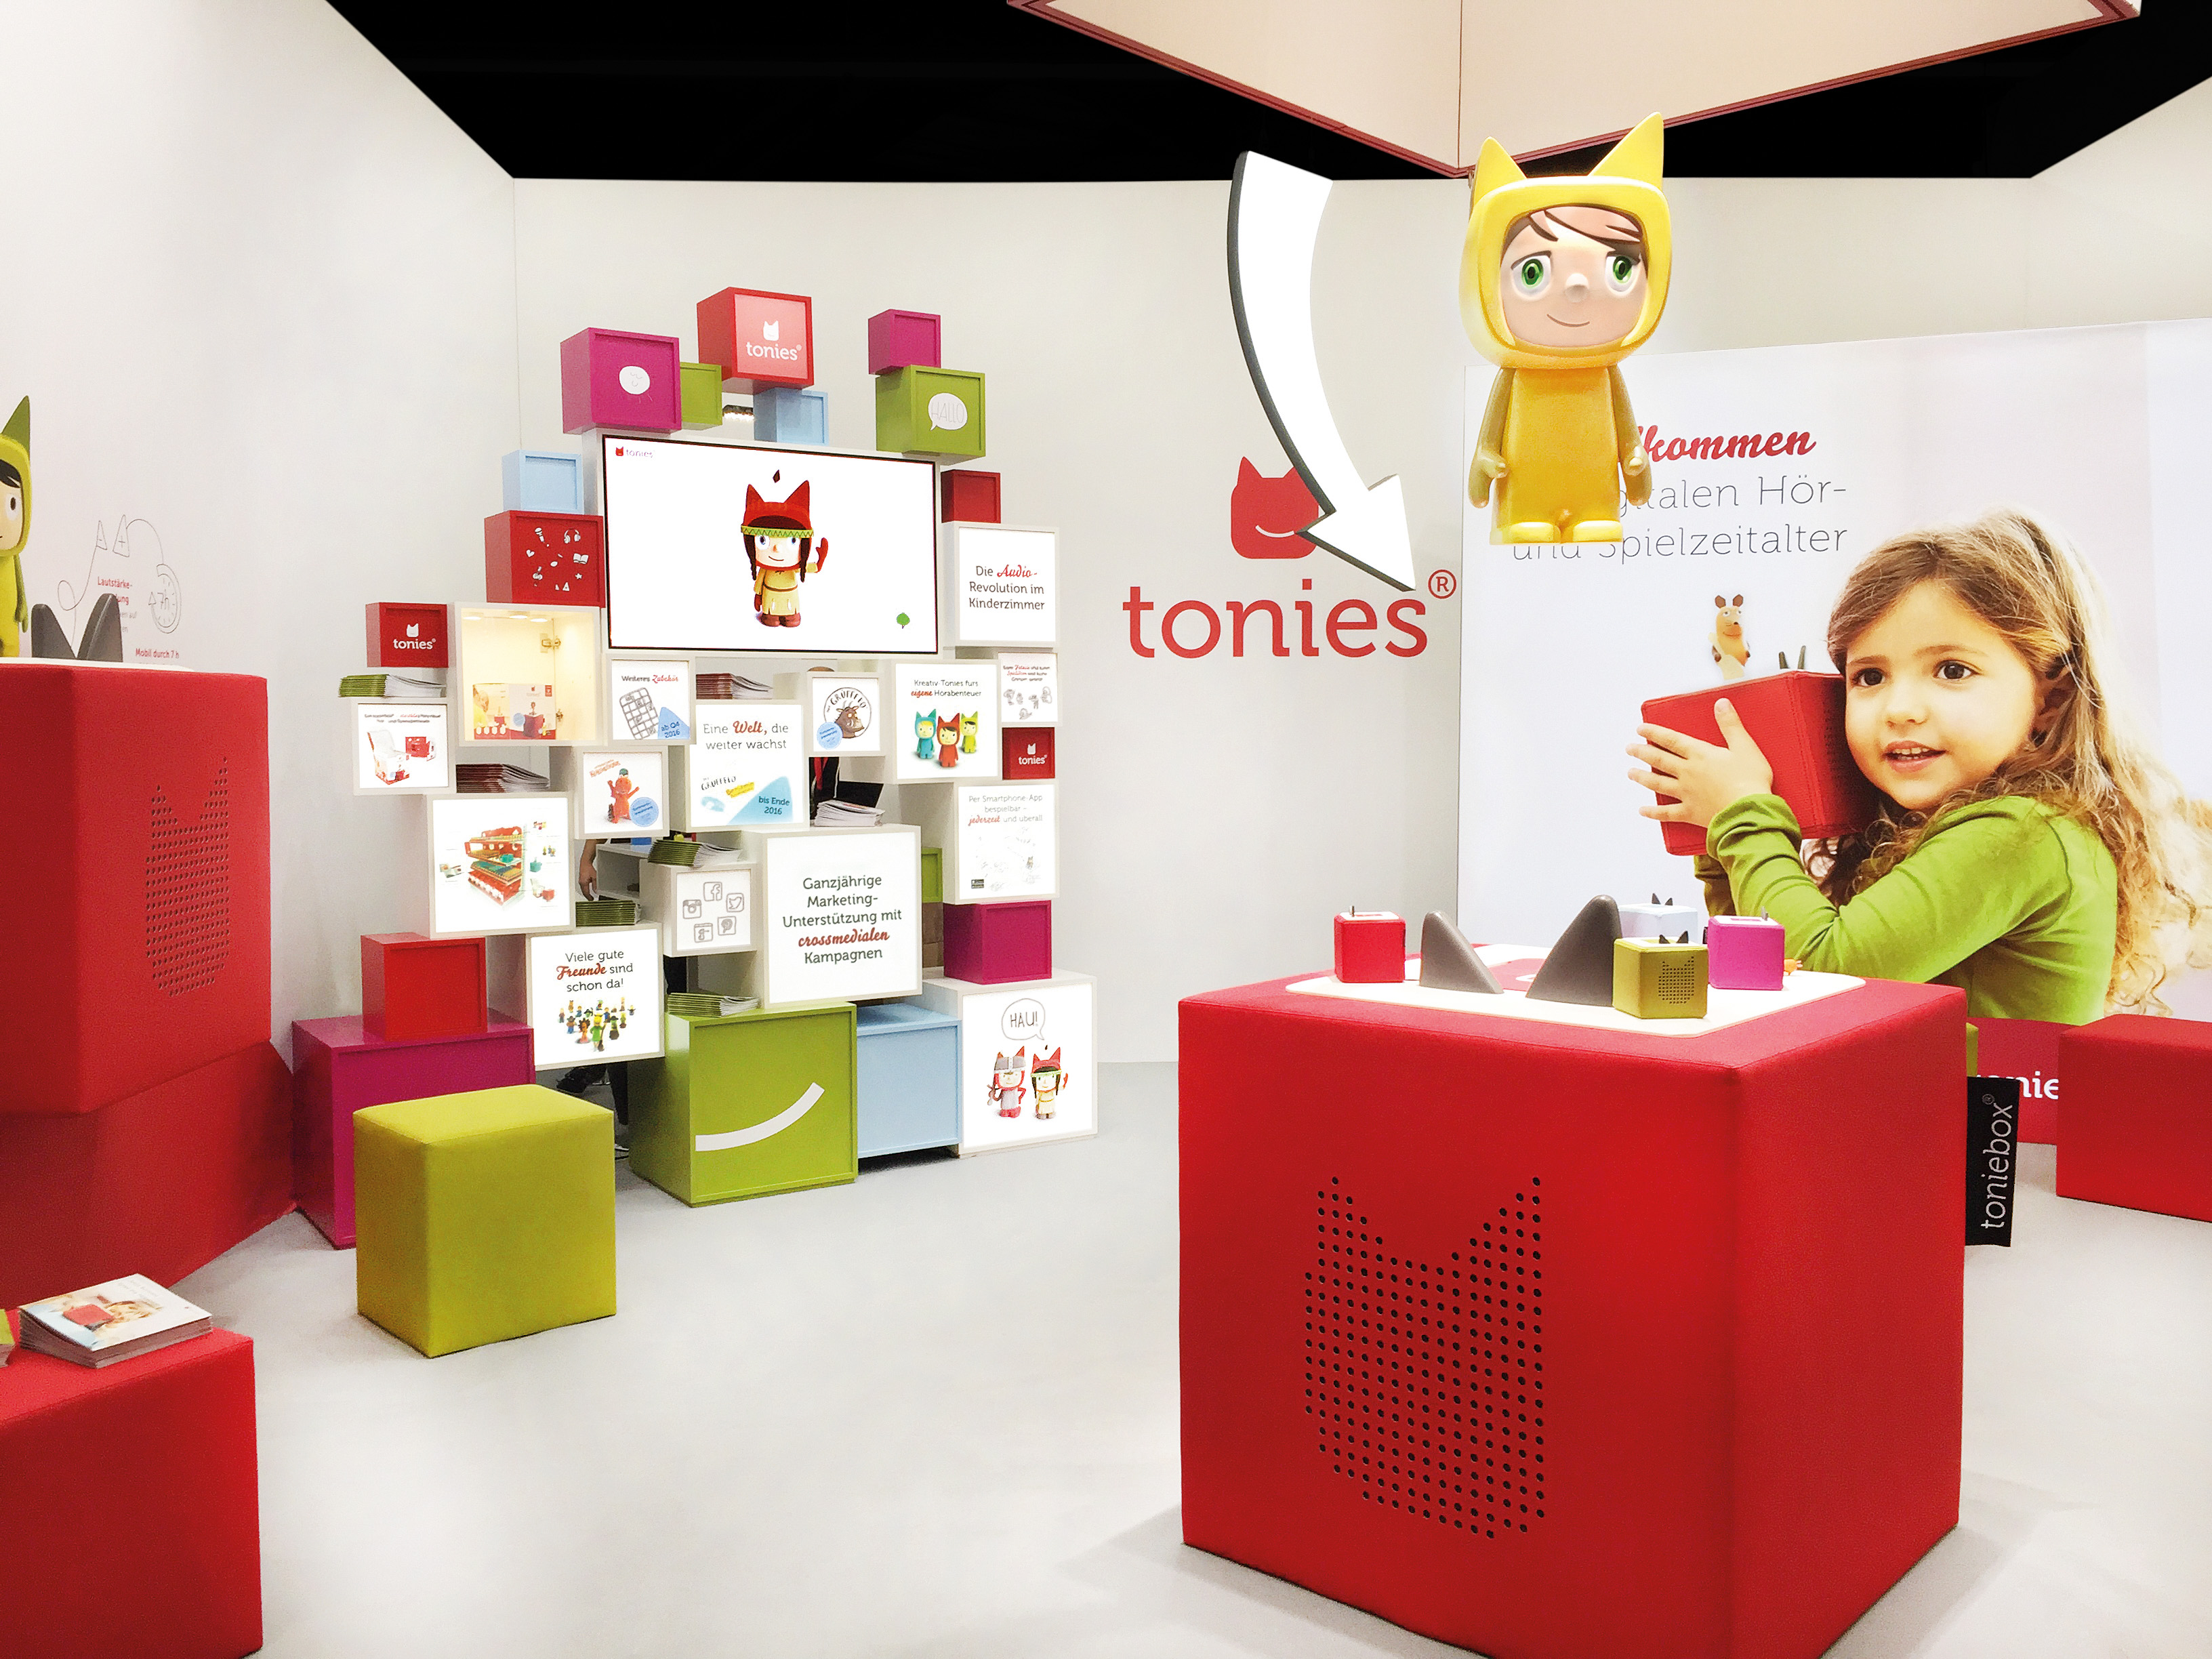 Boxine booth at the toy fair with many colorful cubes